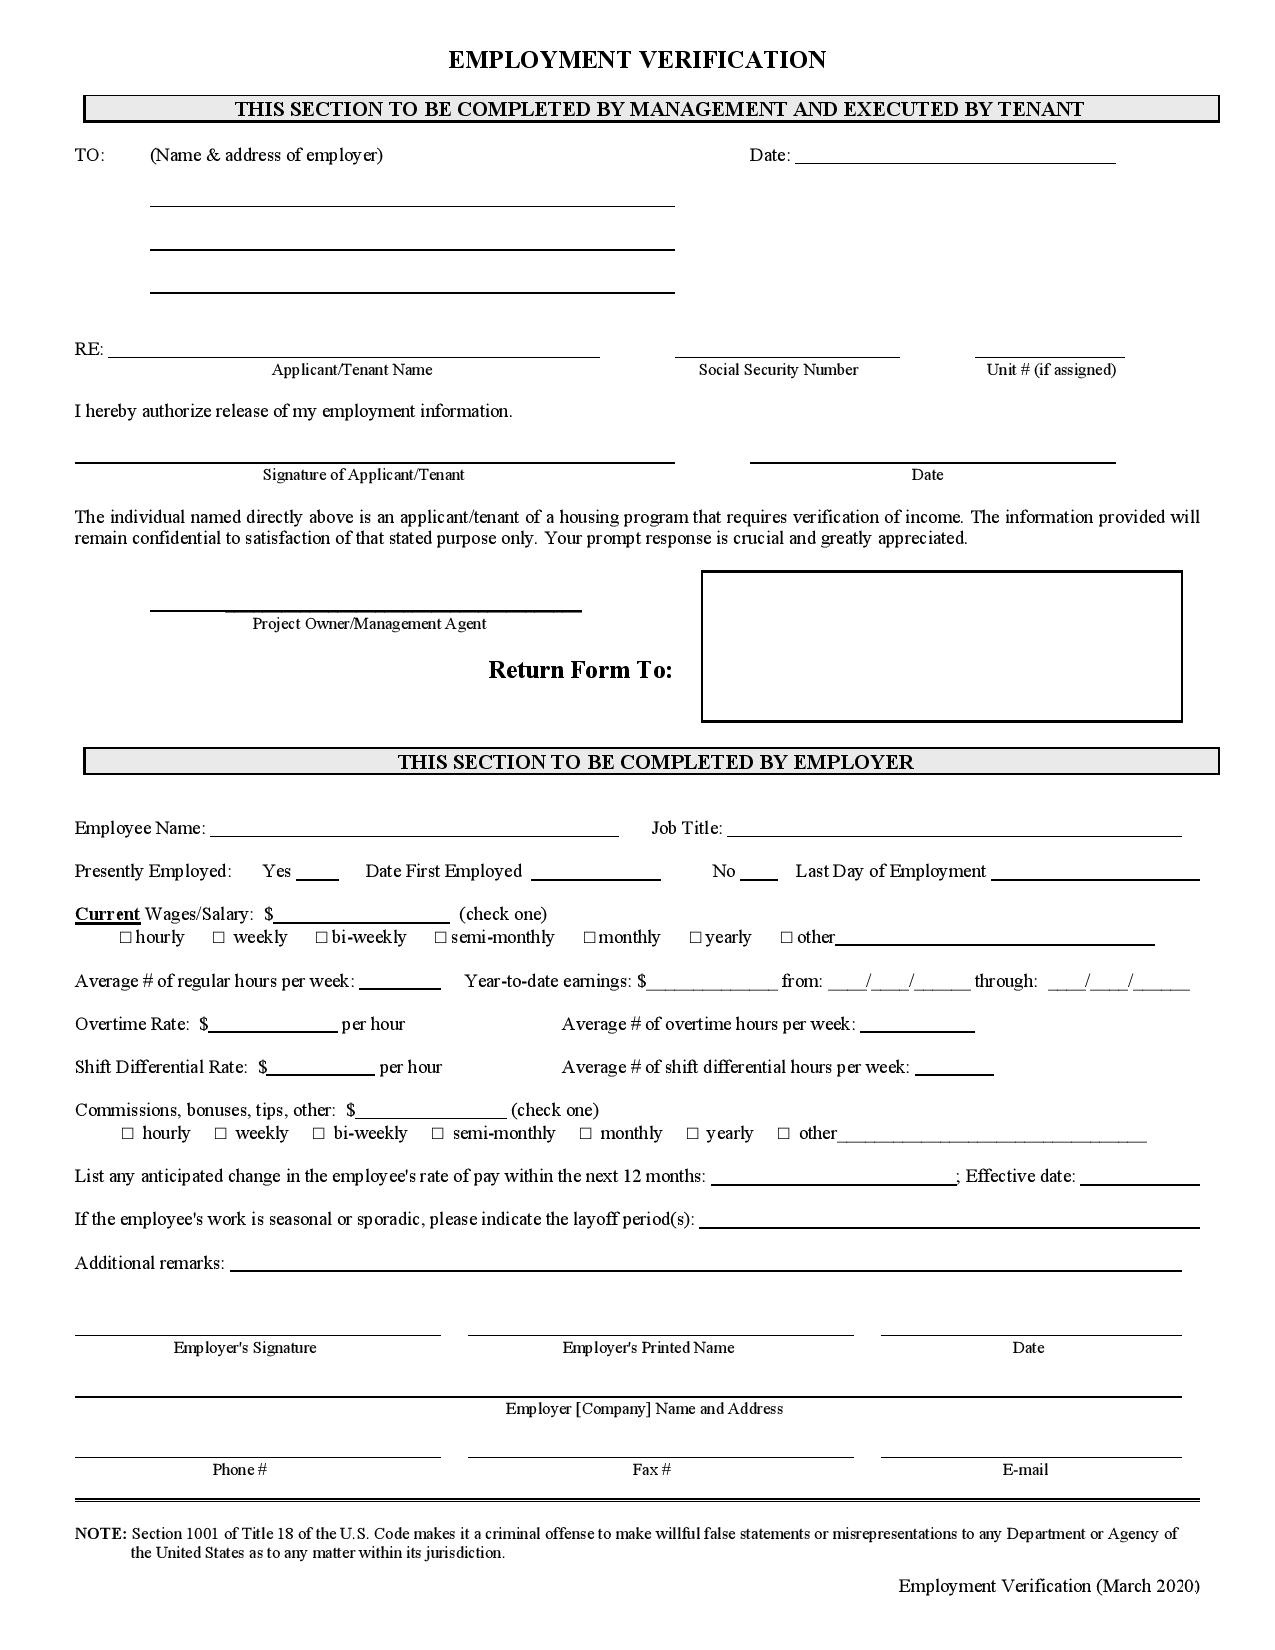 emp verification form-page